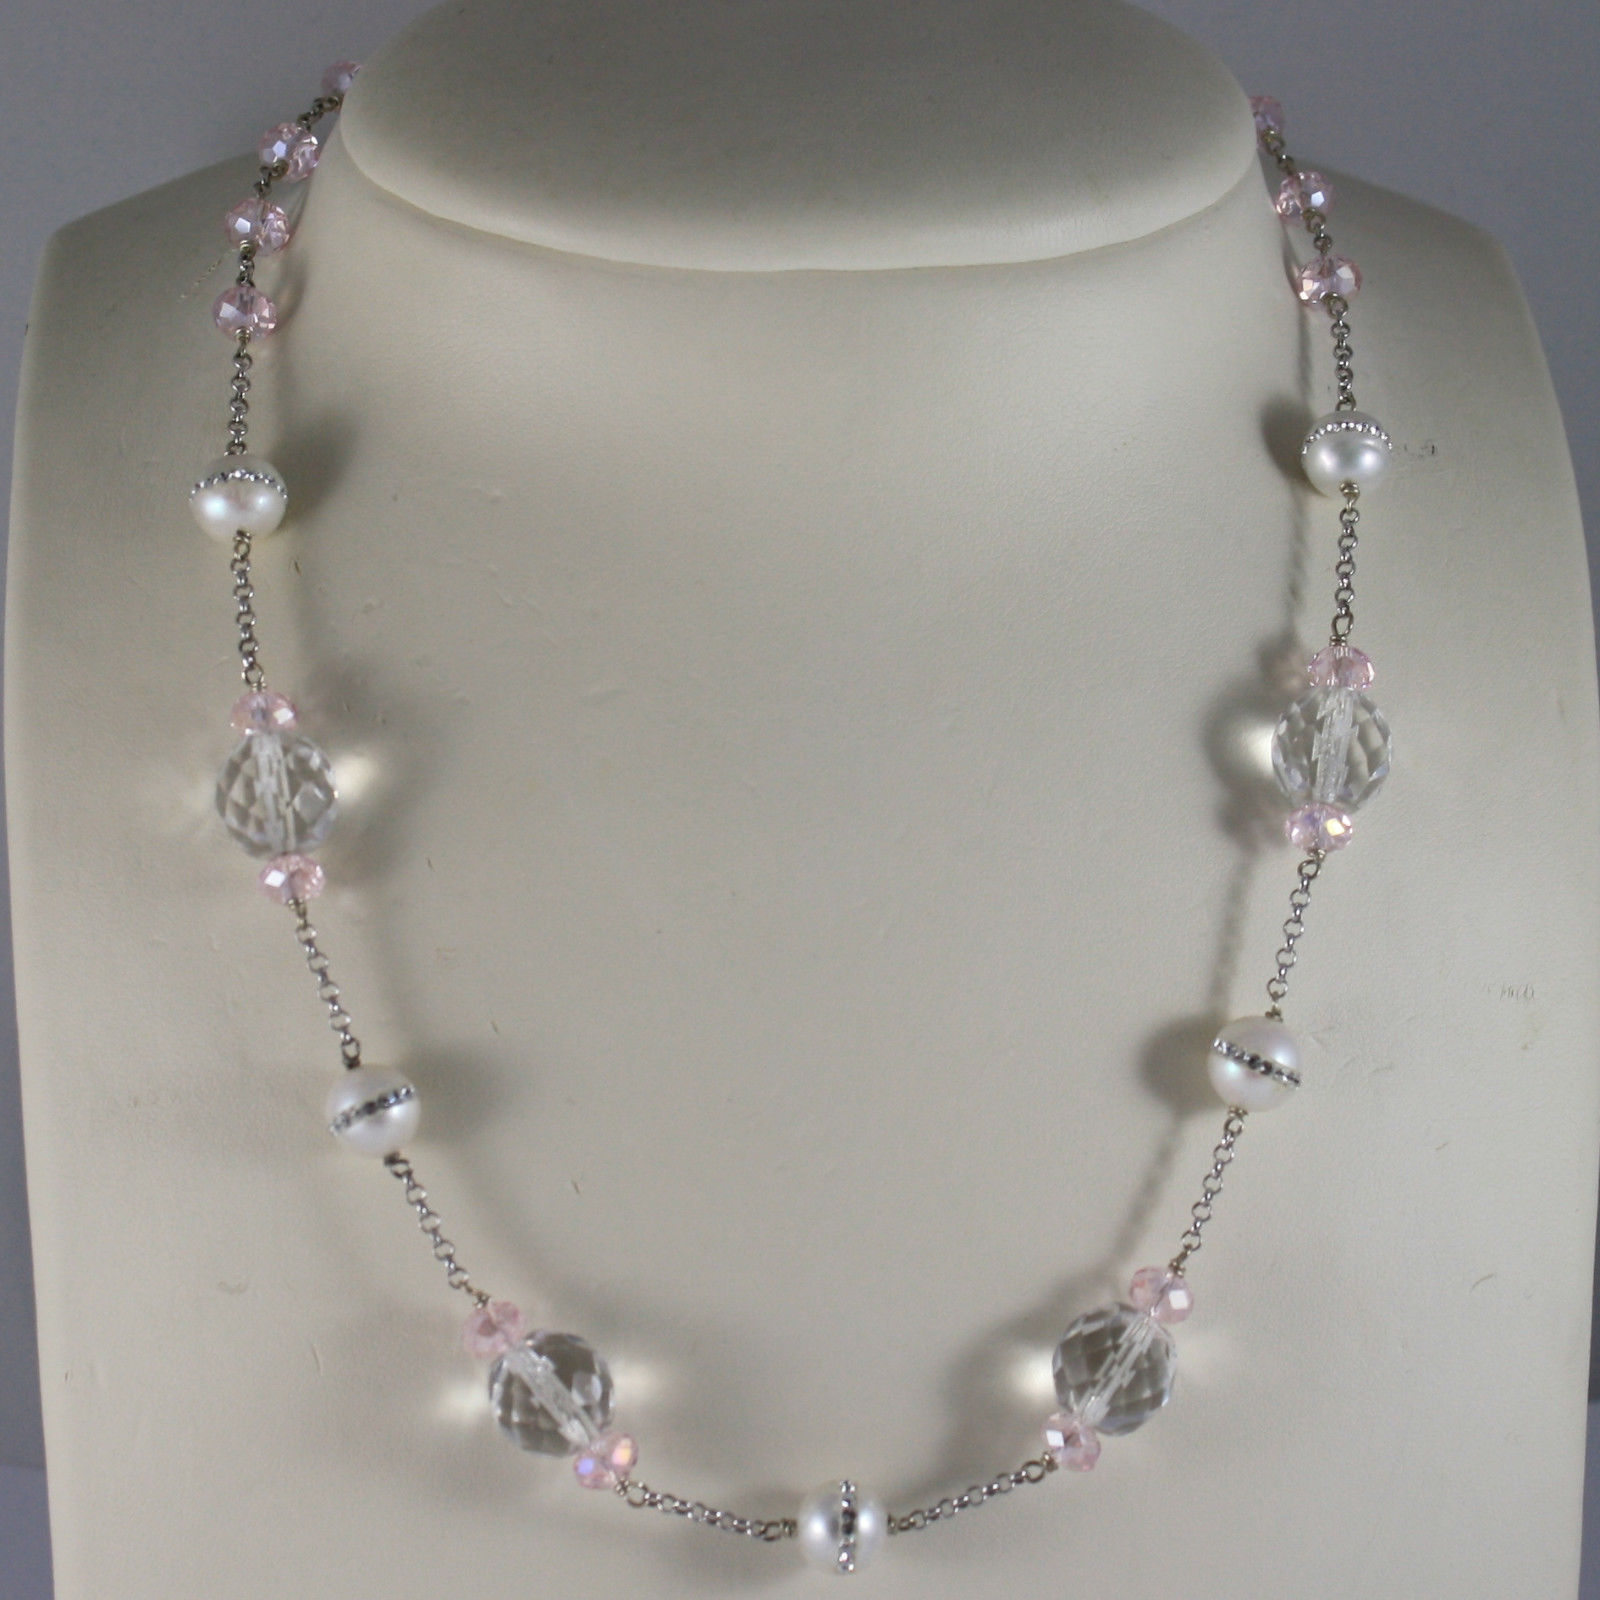 .925 RHODIUM SILVER NECKLACE WITH WHITE PEARLS WITH ZIRCONIA AND PINK CRISTALS